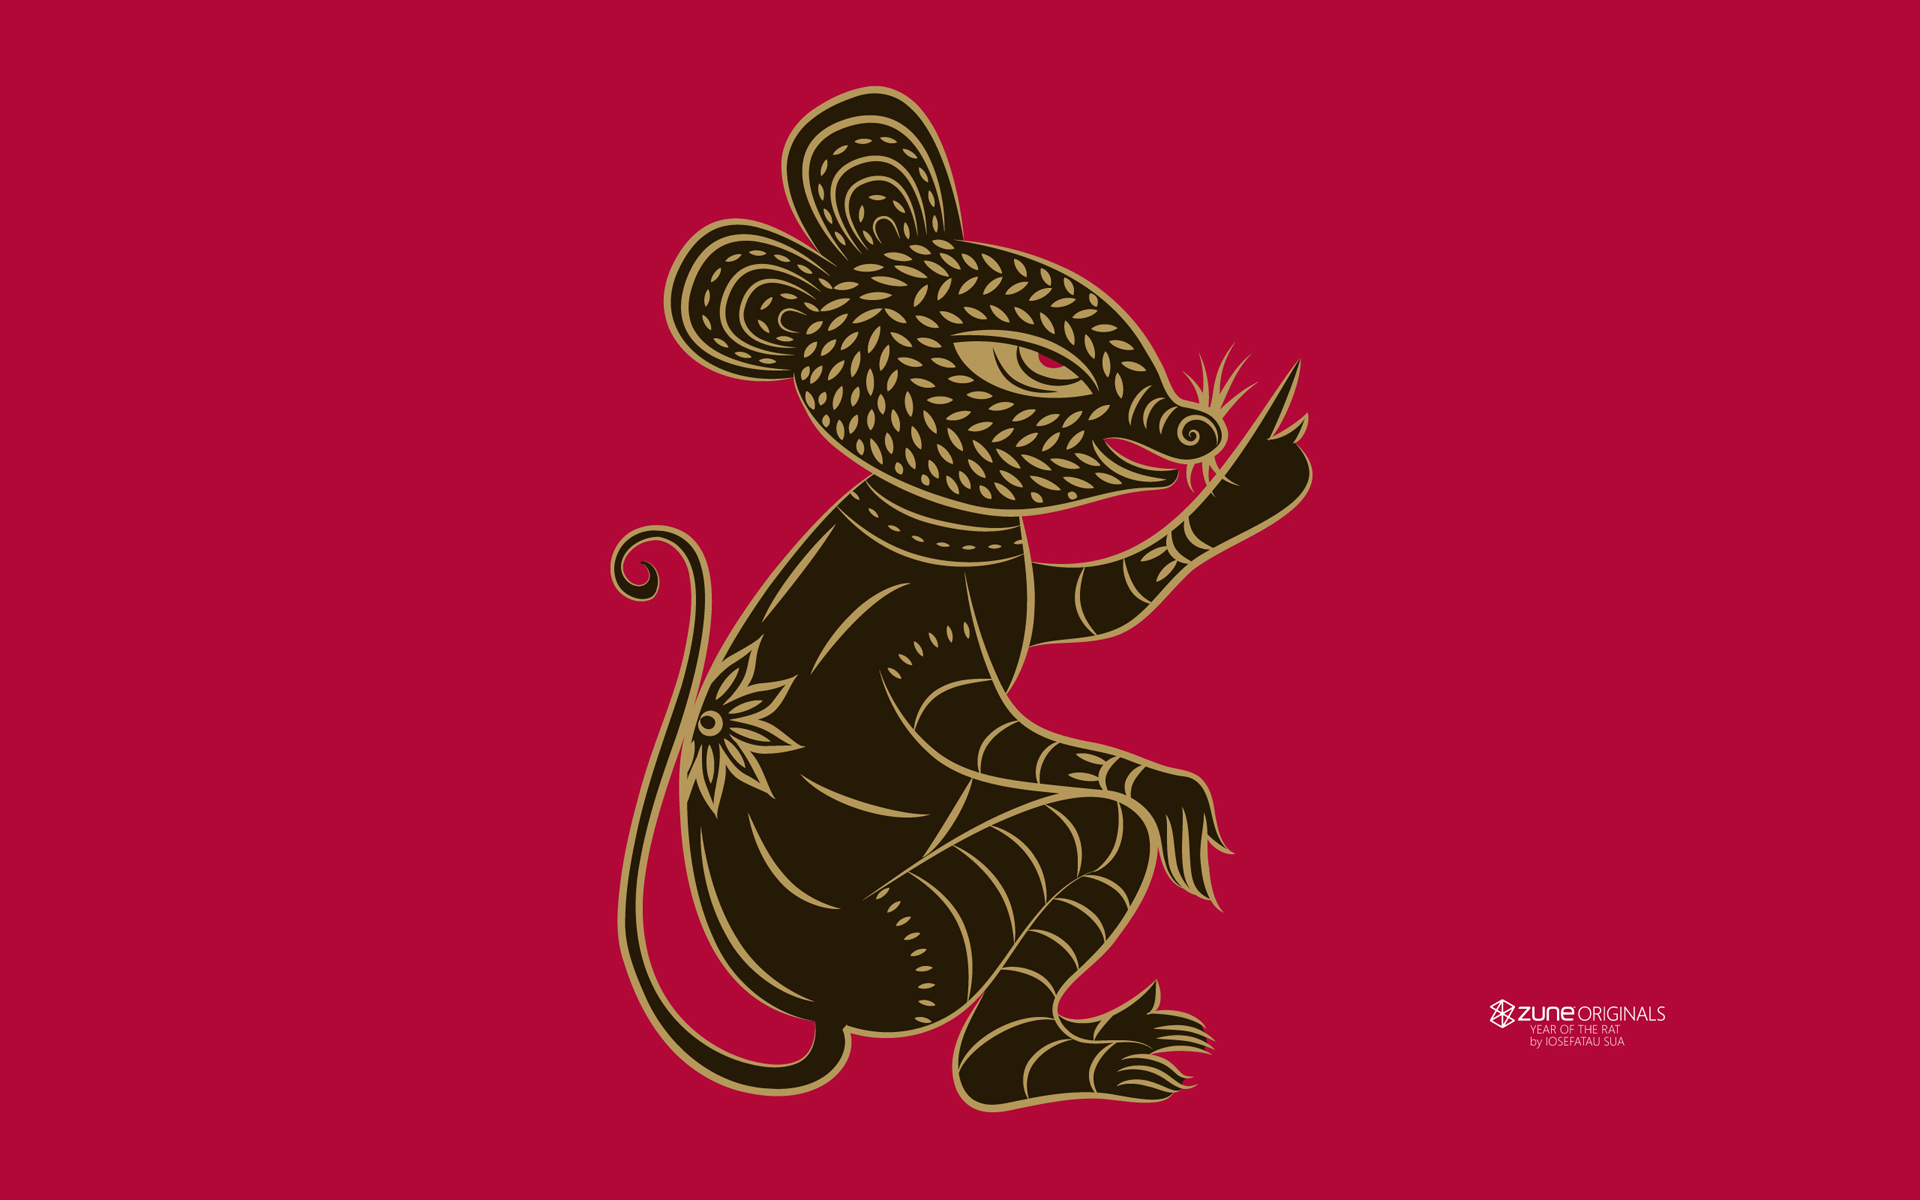 Chinese Zodiac Images Year Of The Rat HD Wallpaper And Background Photos